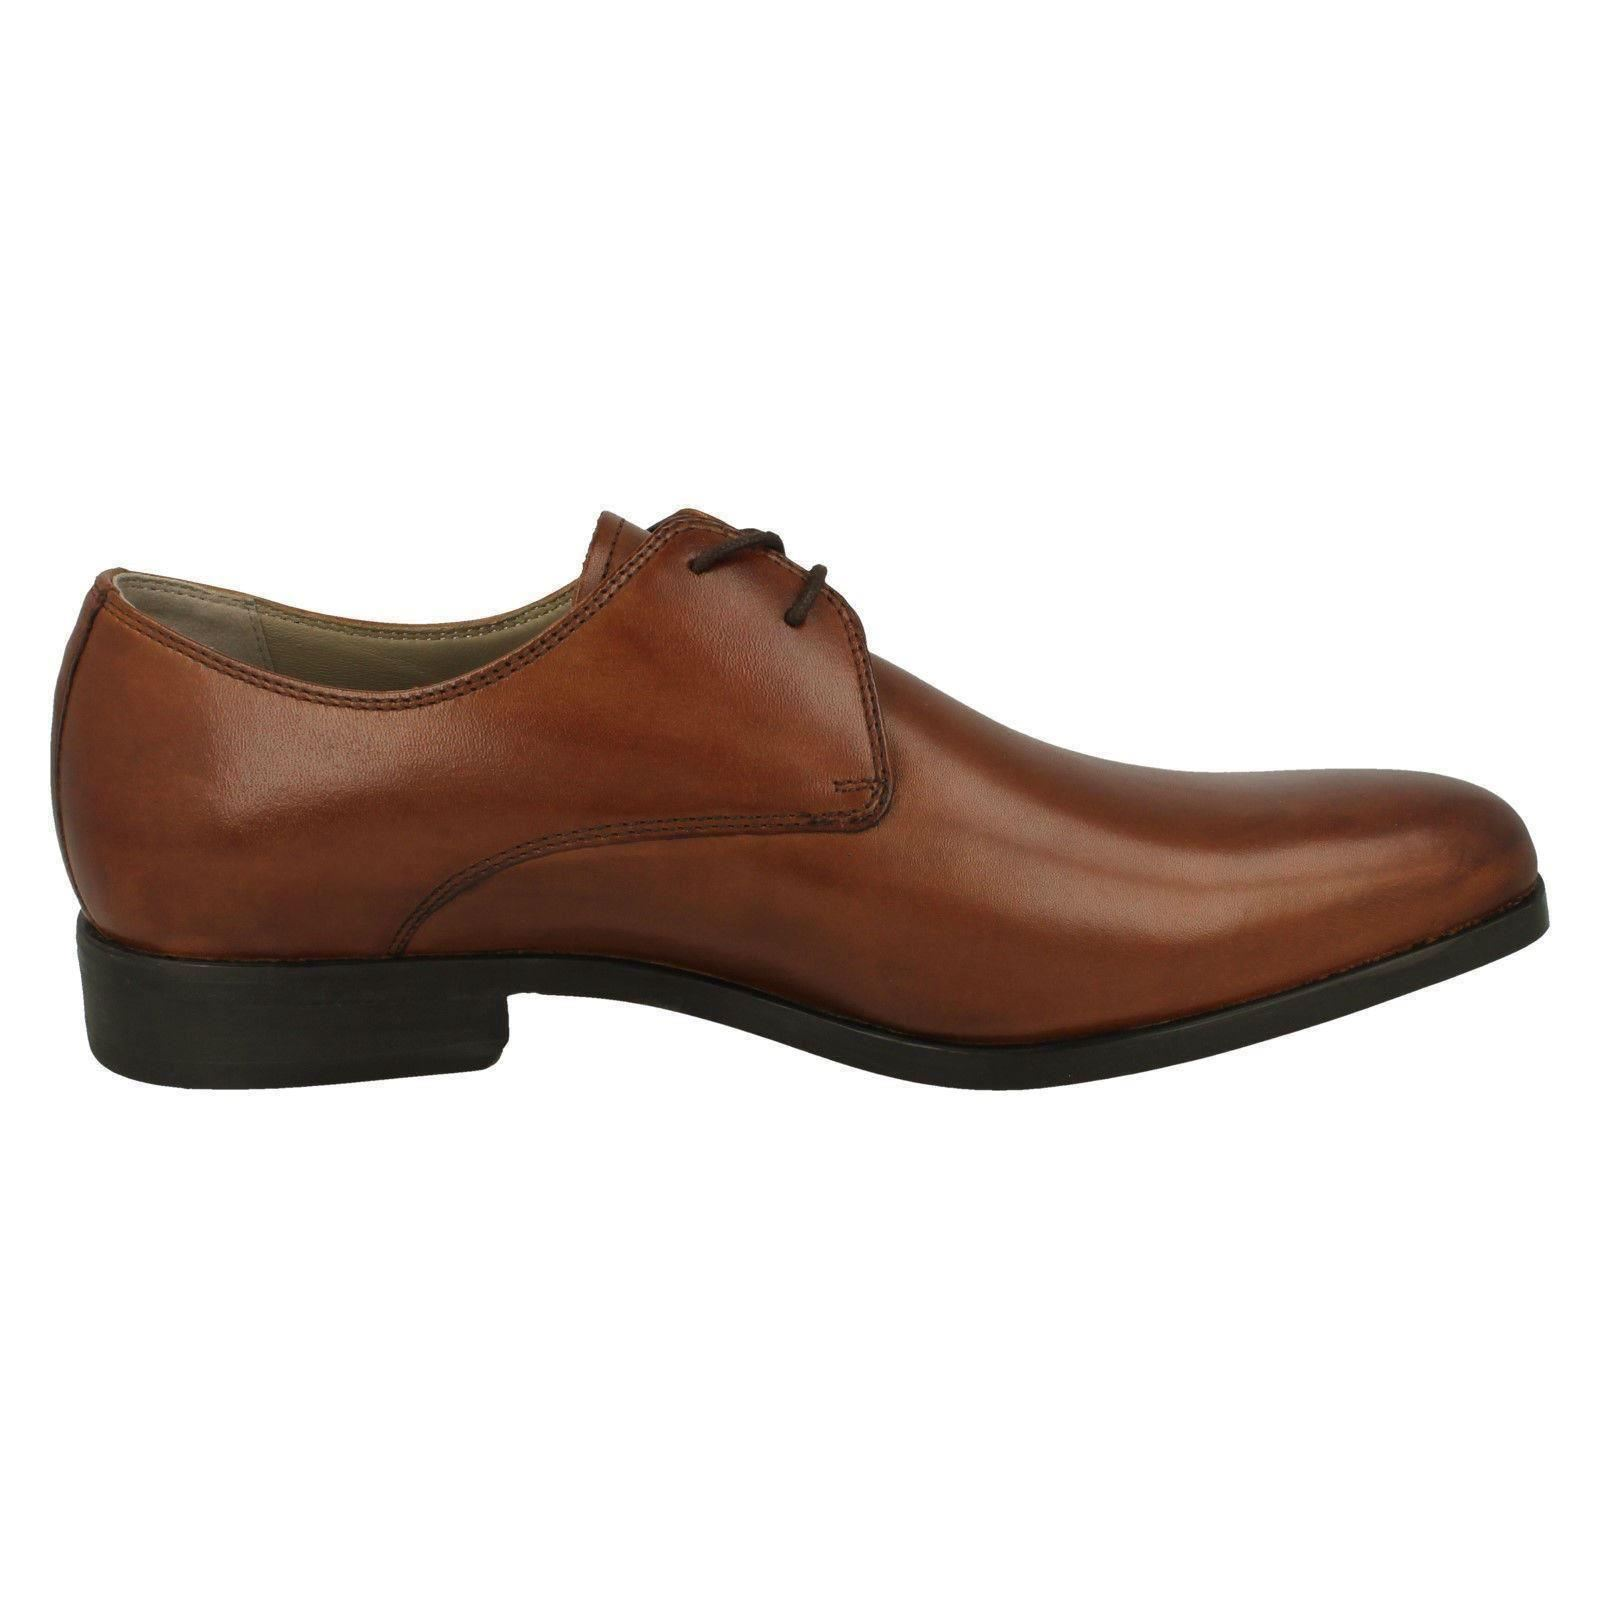 Uomo Clarks Amieson Up Walk Formal Lace Up Amieson Schuhes 6e5b0a